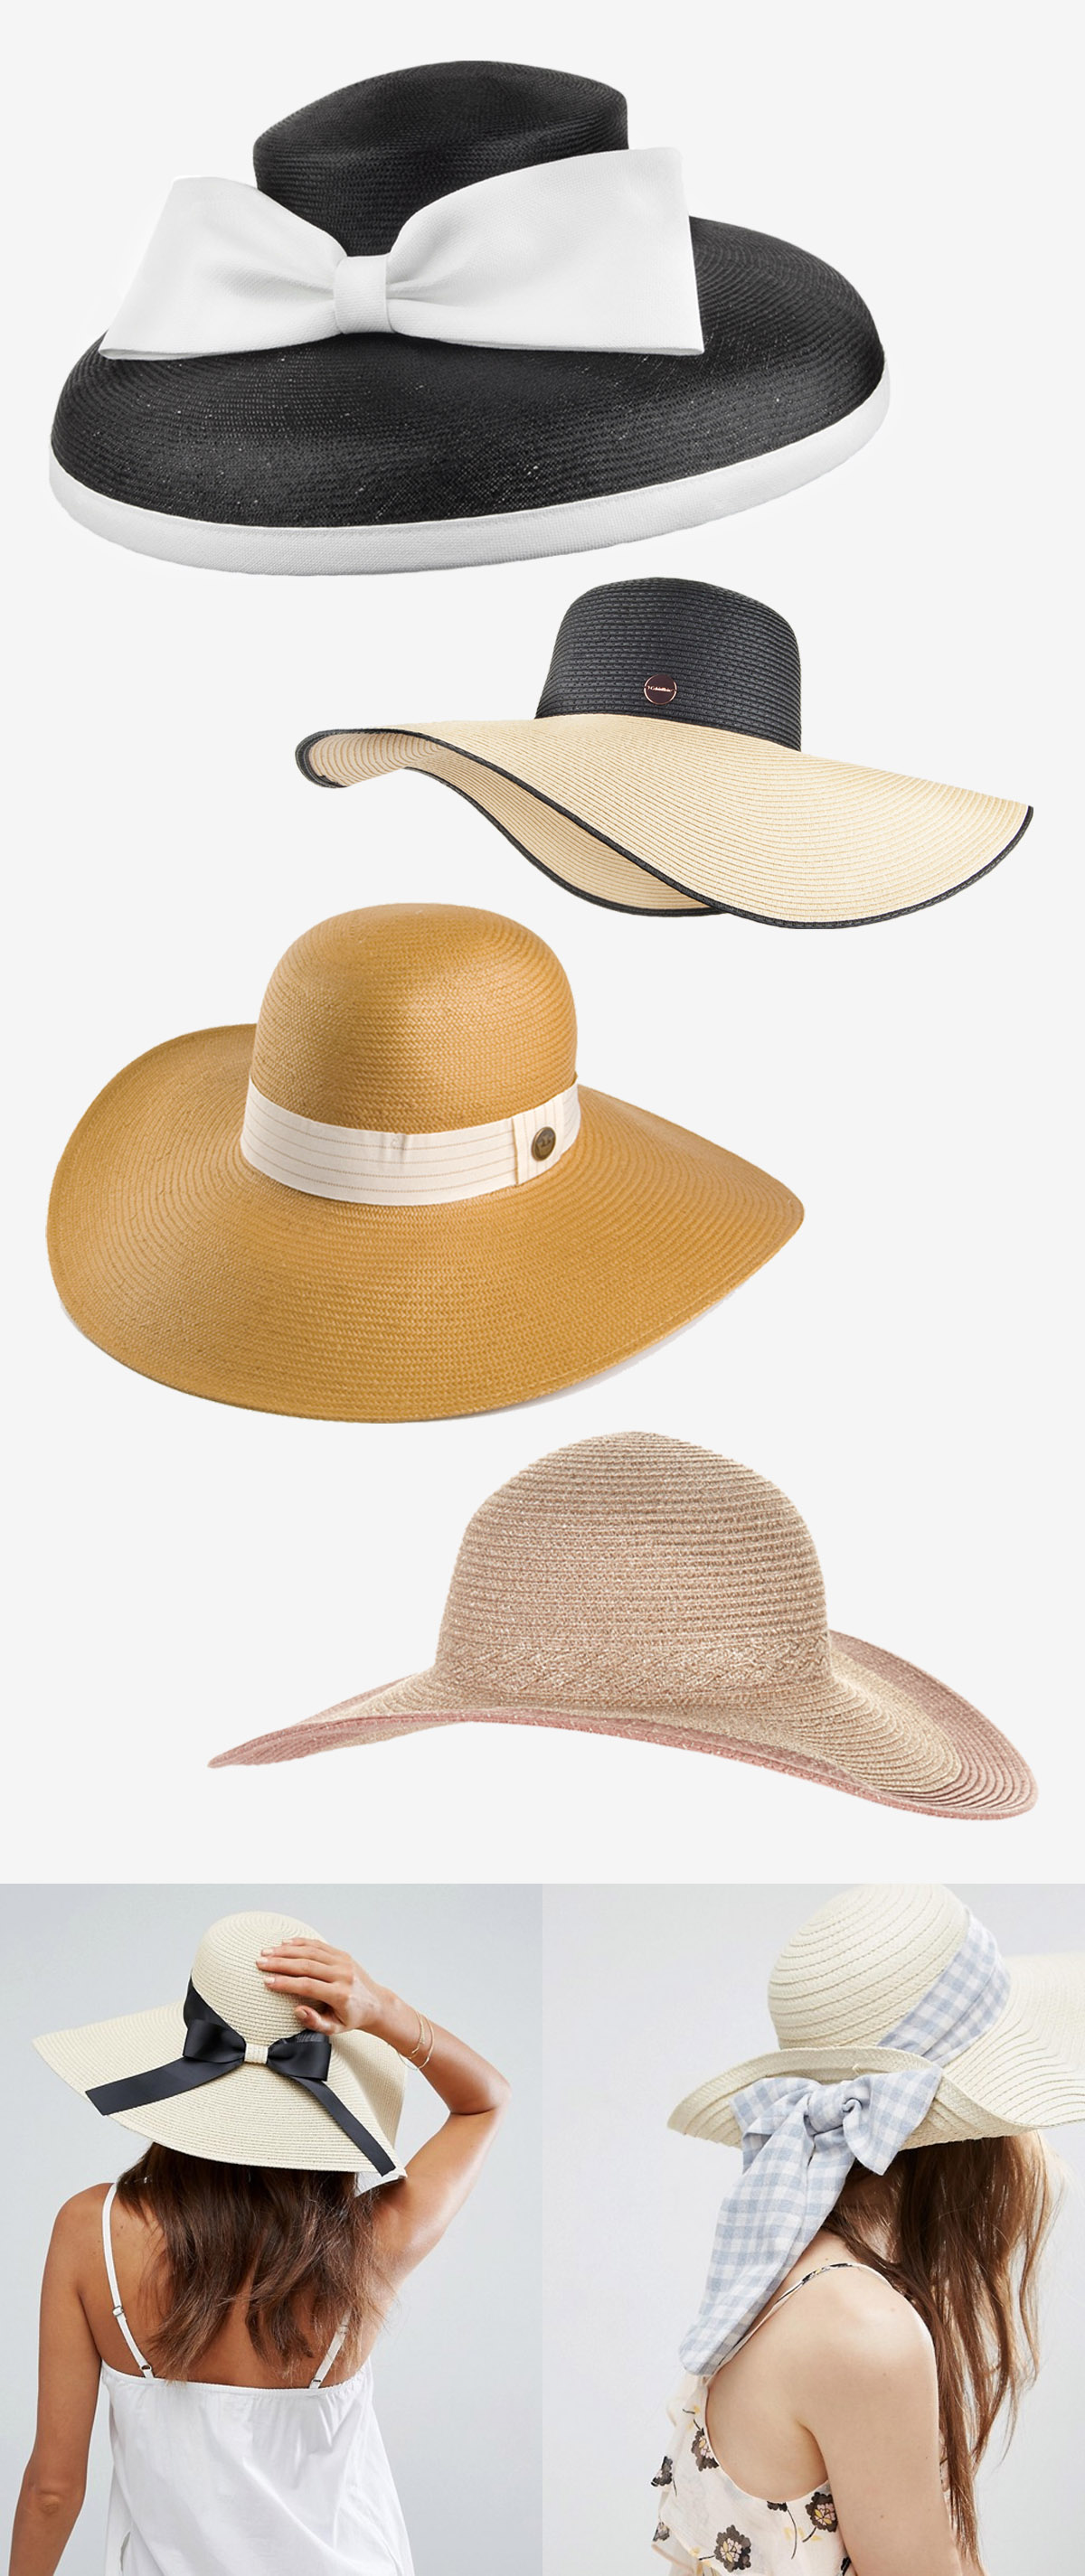 34 Modern Wedding Guest Hats and Fascinators - Floppy hats and wide brim hats